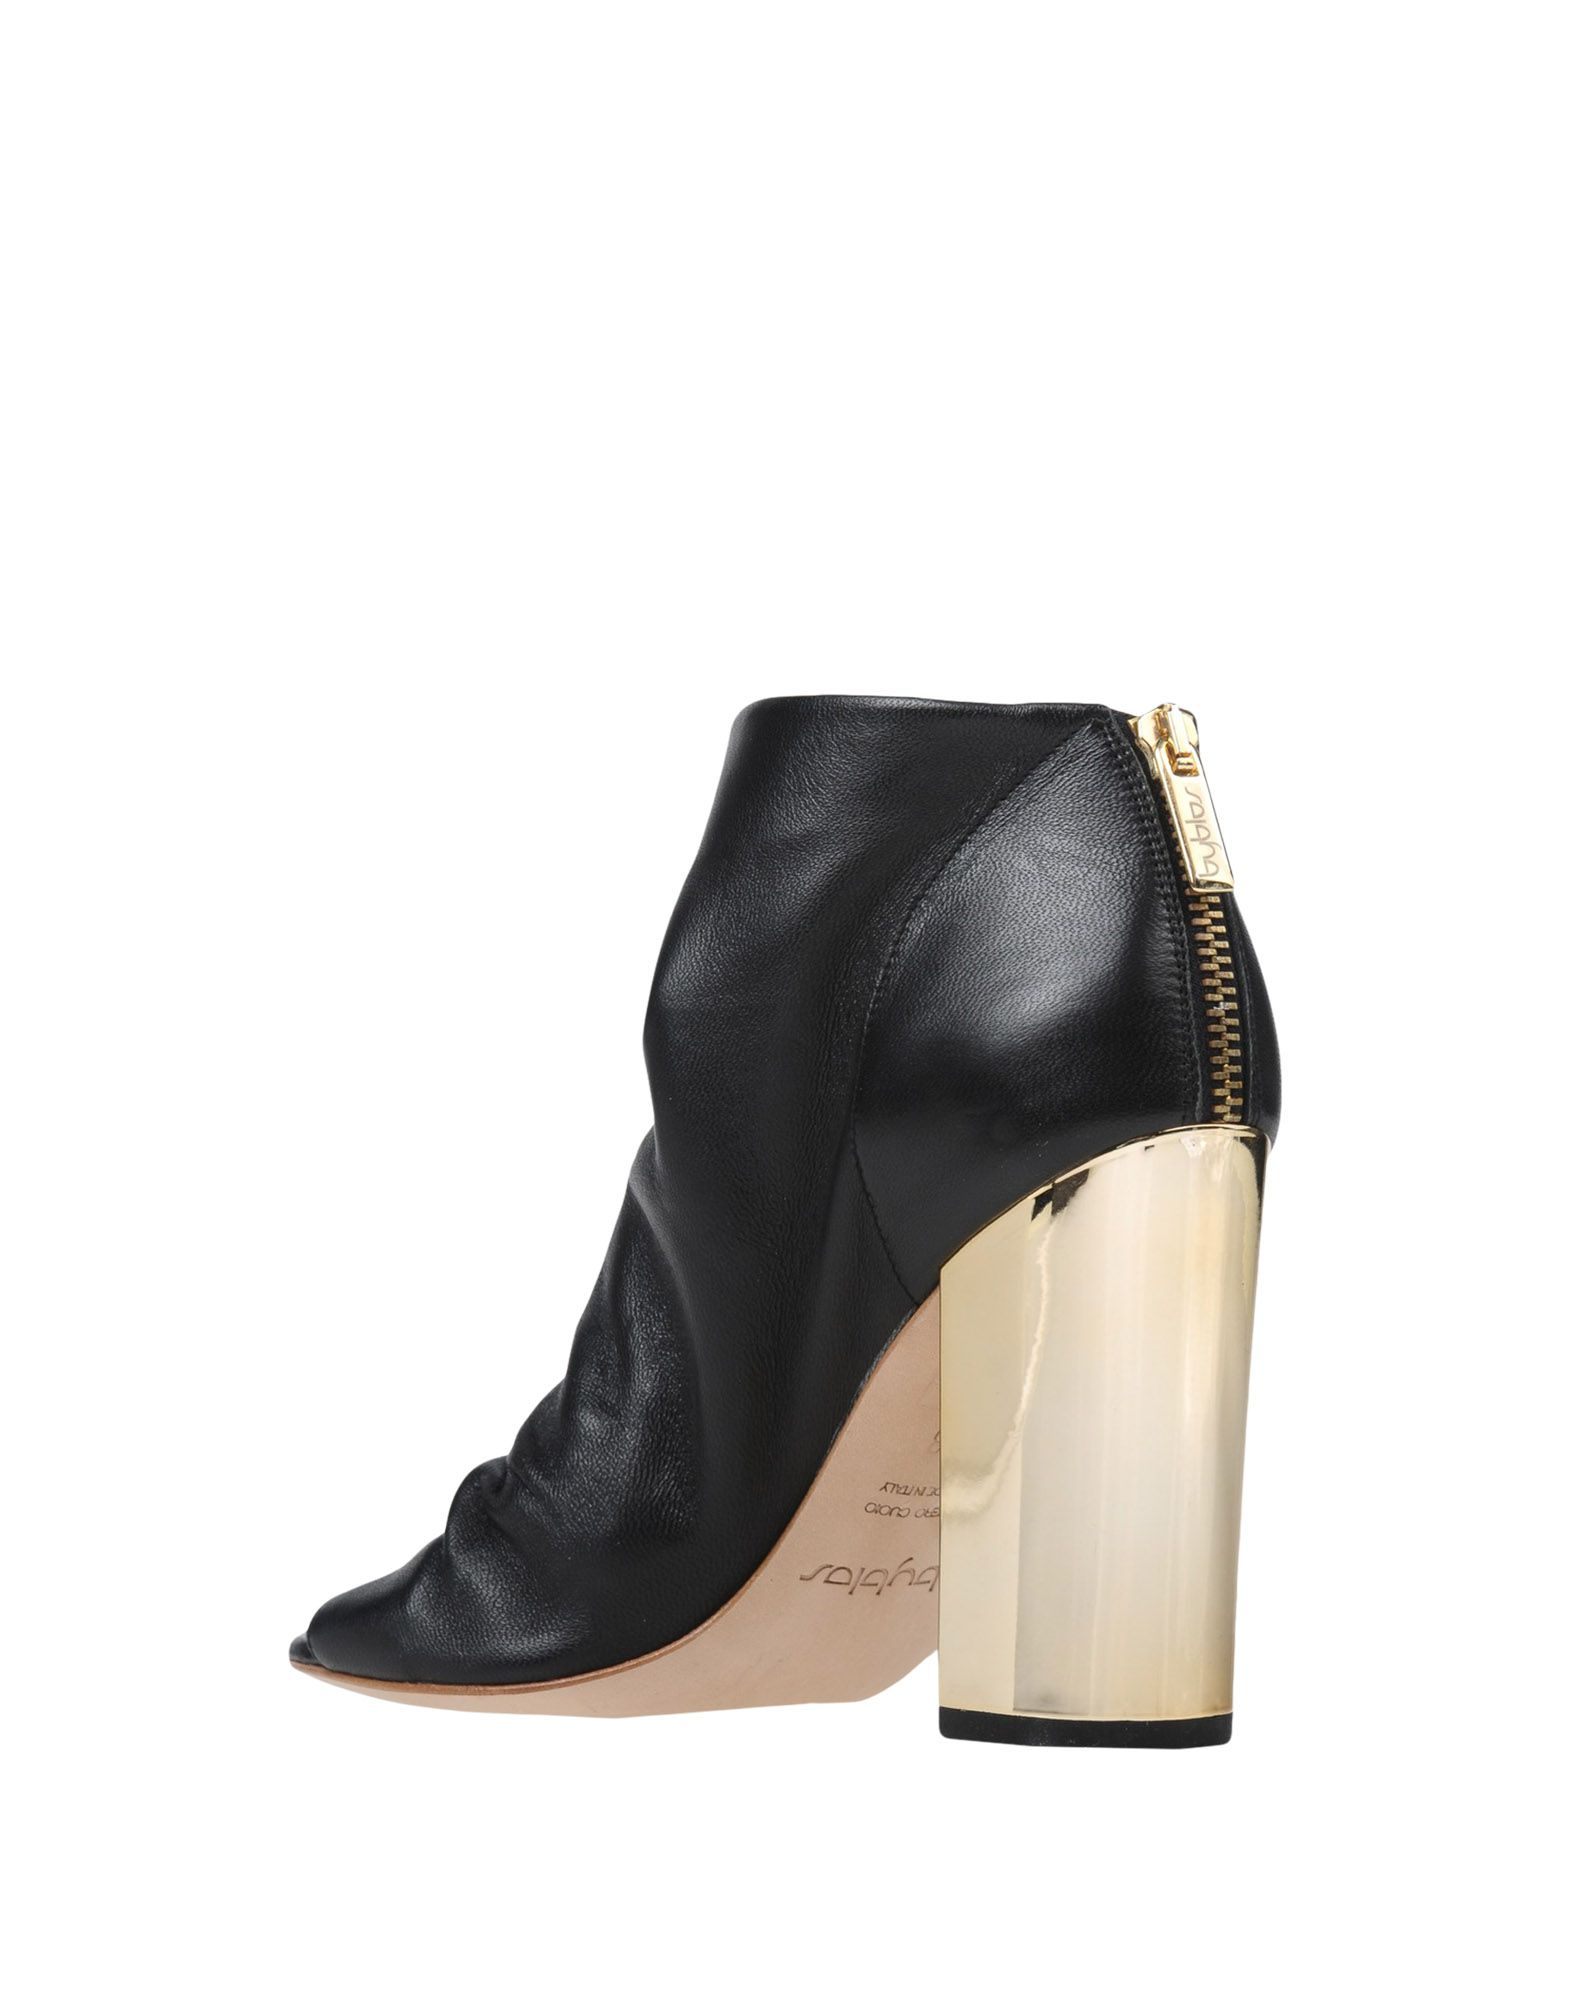 Bottine Byblos Femme - Bottines Byblos sur